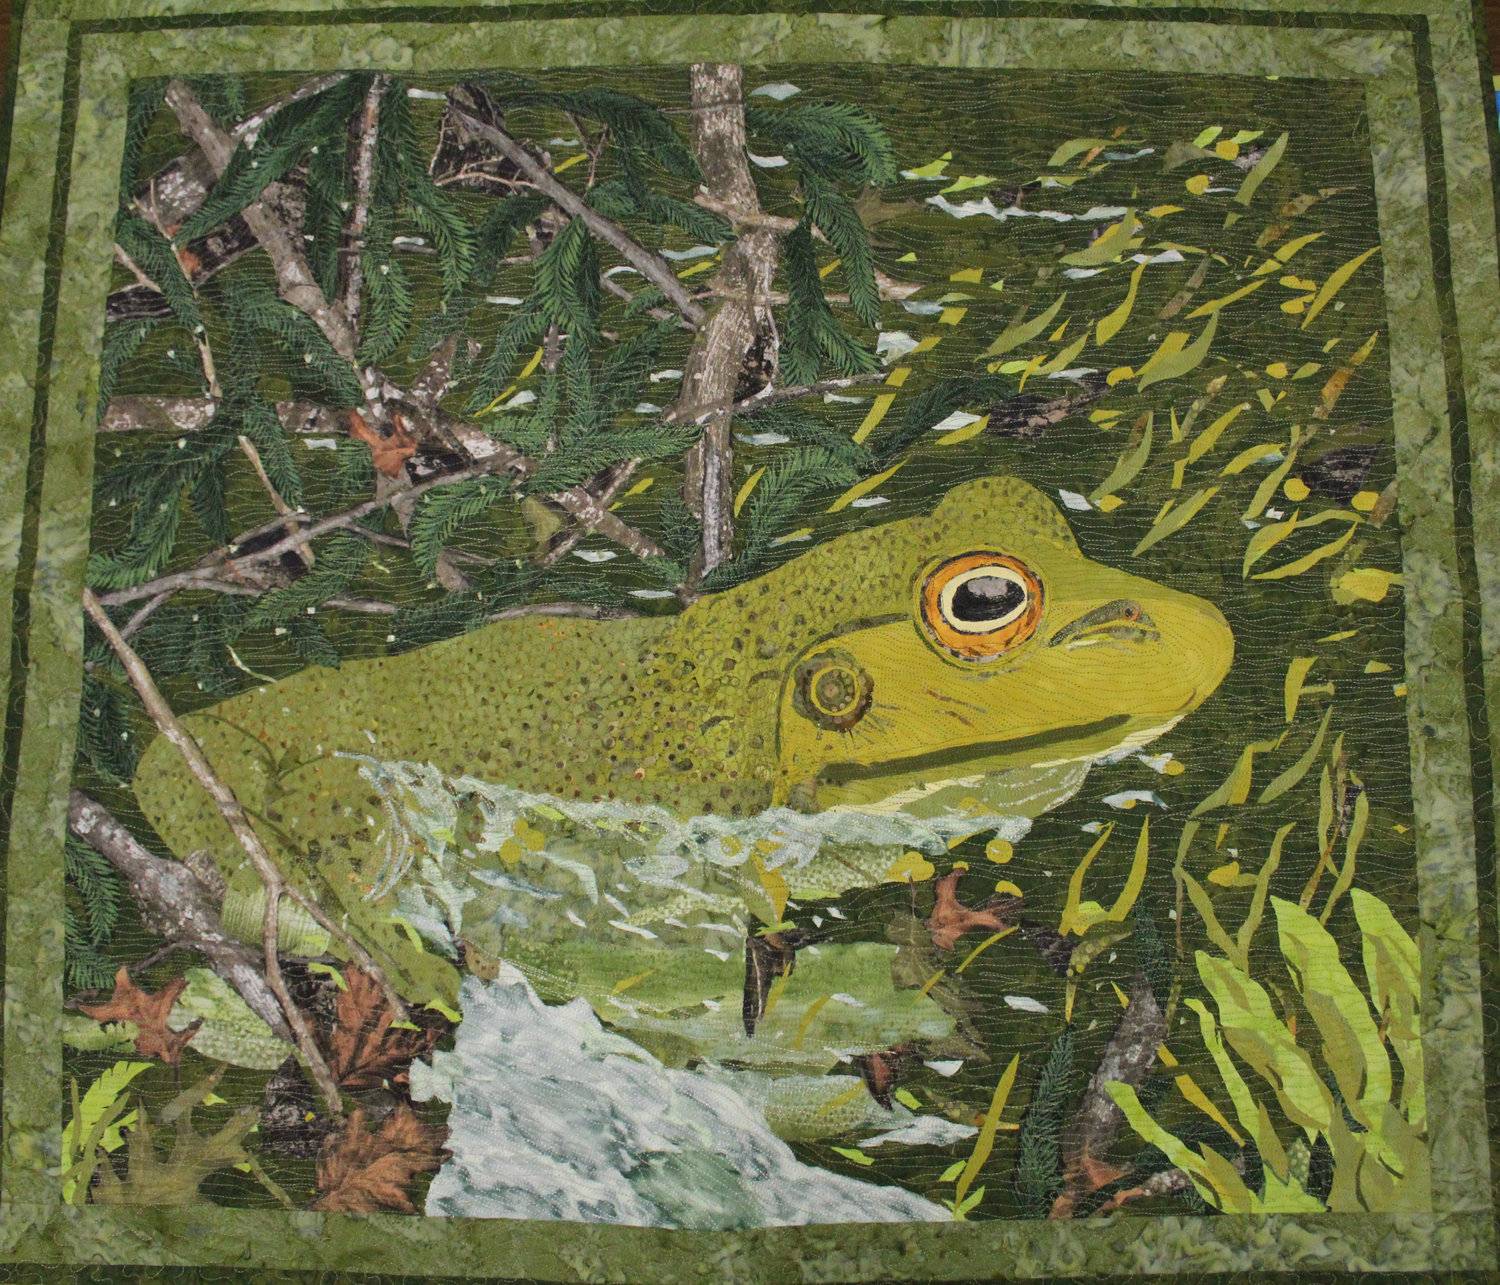 """FROGGY BOG"" is the second quilt in a series of photography-inspired works by Sandra Presley, of Charleston. She said each quilt takes her weeks and features scraps of fabric as small as a single pea to create dimension and depth."